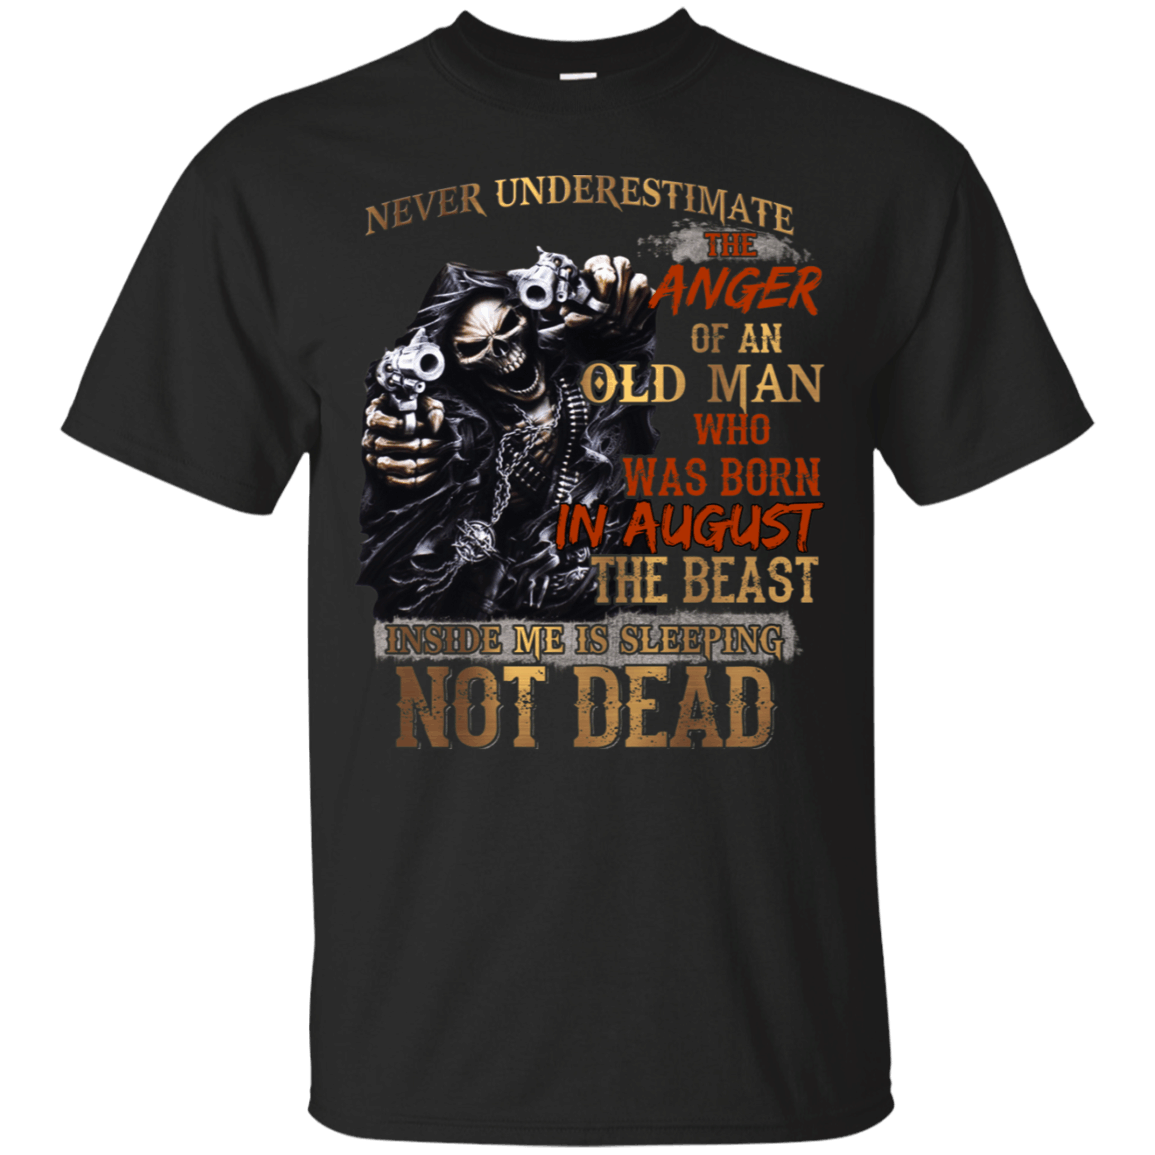 Never Underestimate The Anger Of An Old Man Born In August T-Shirt